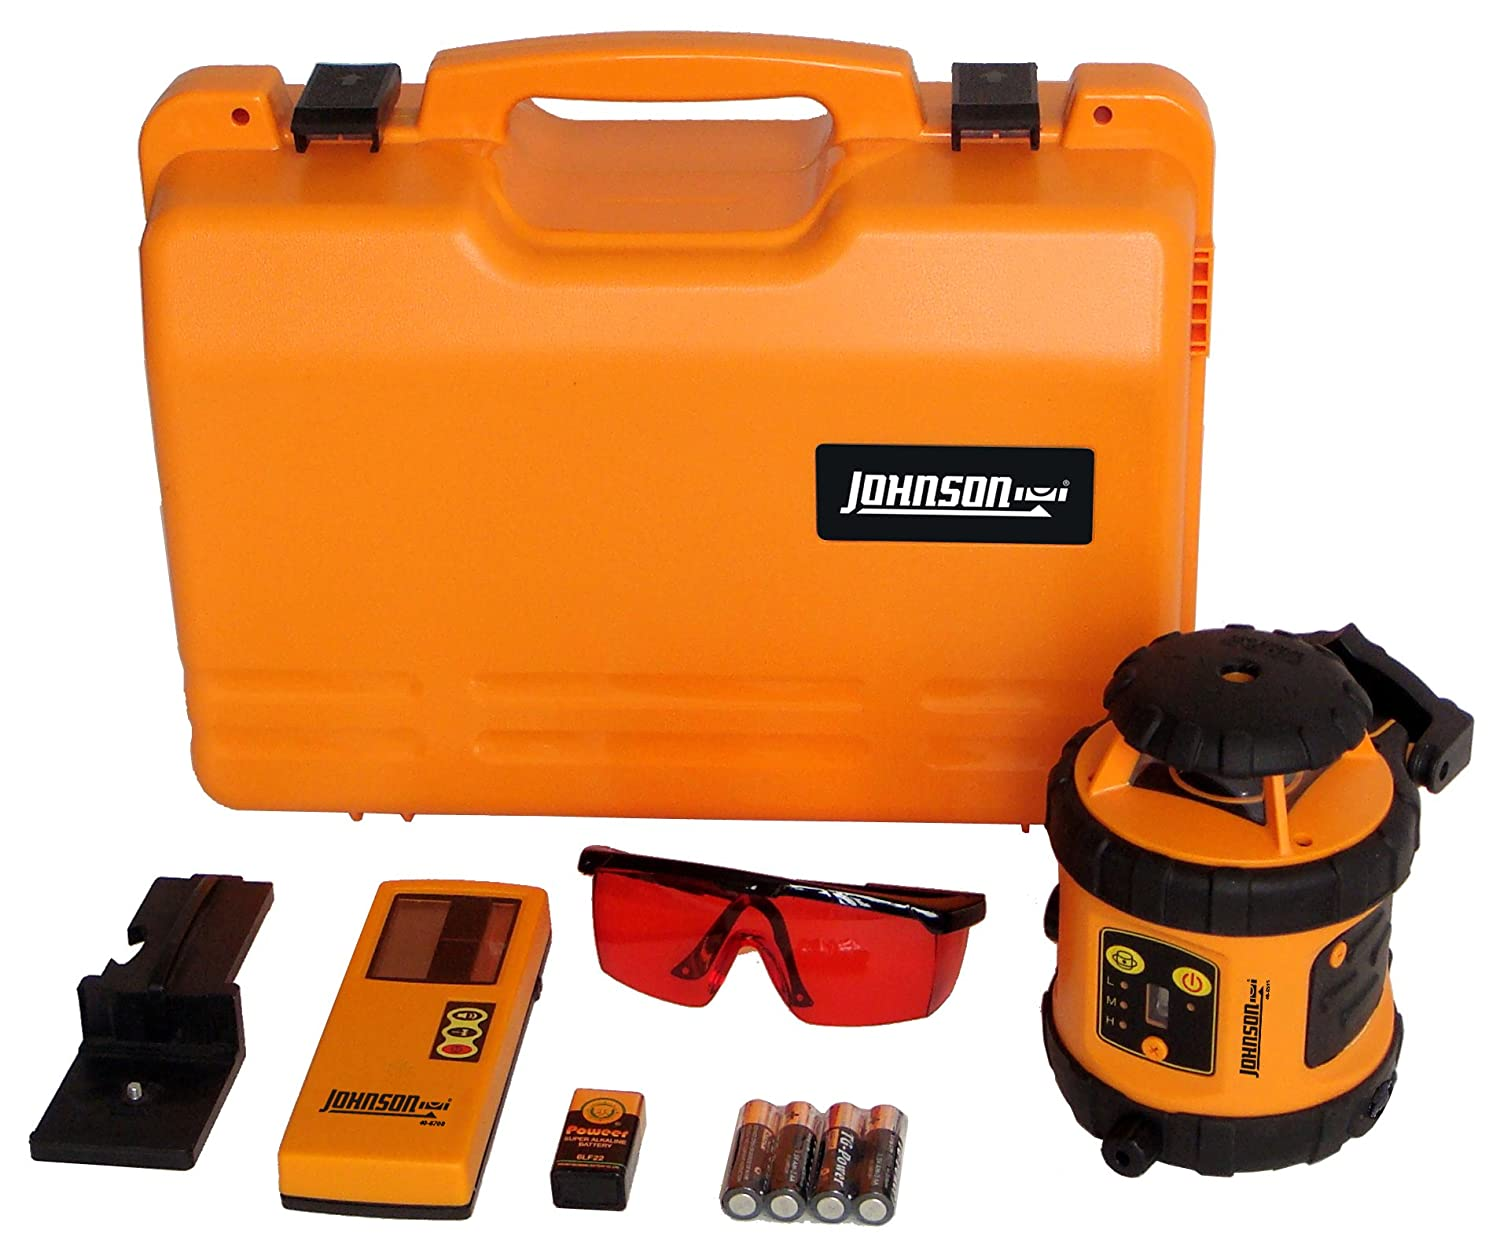 Johnson Level and Tool 40 6516 Self Leveling Rotary Laser Level